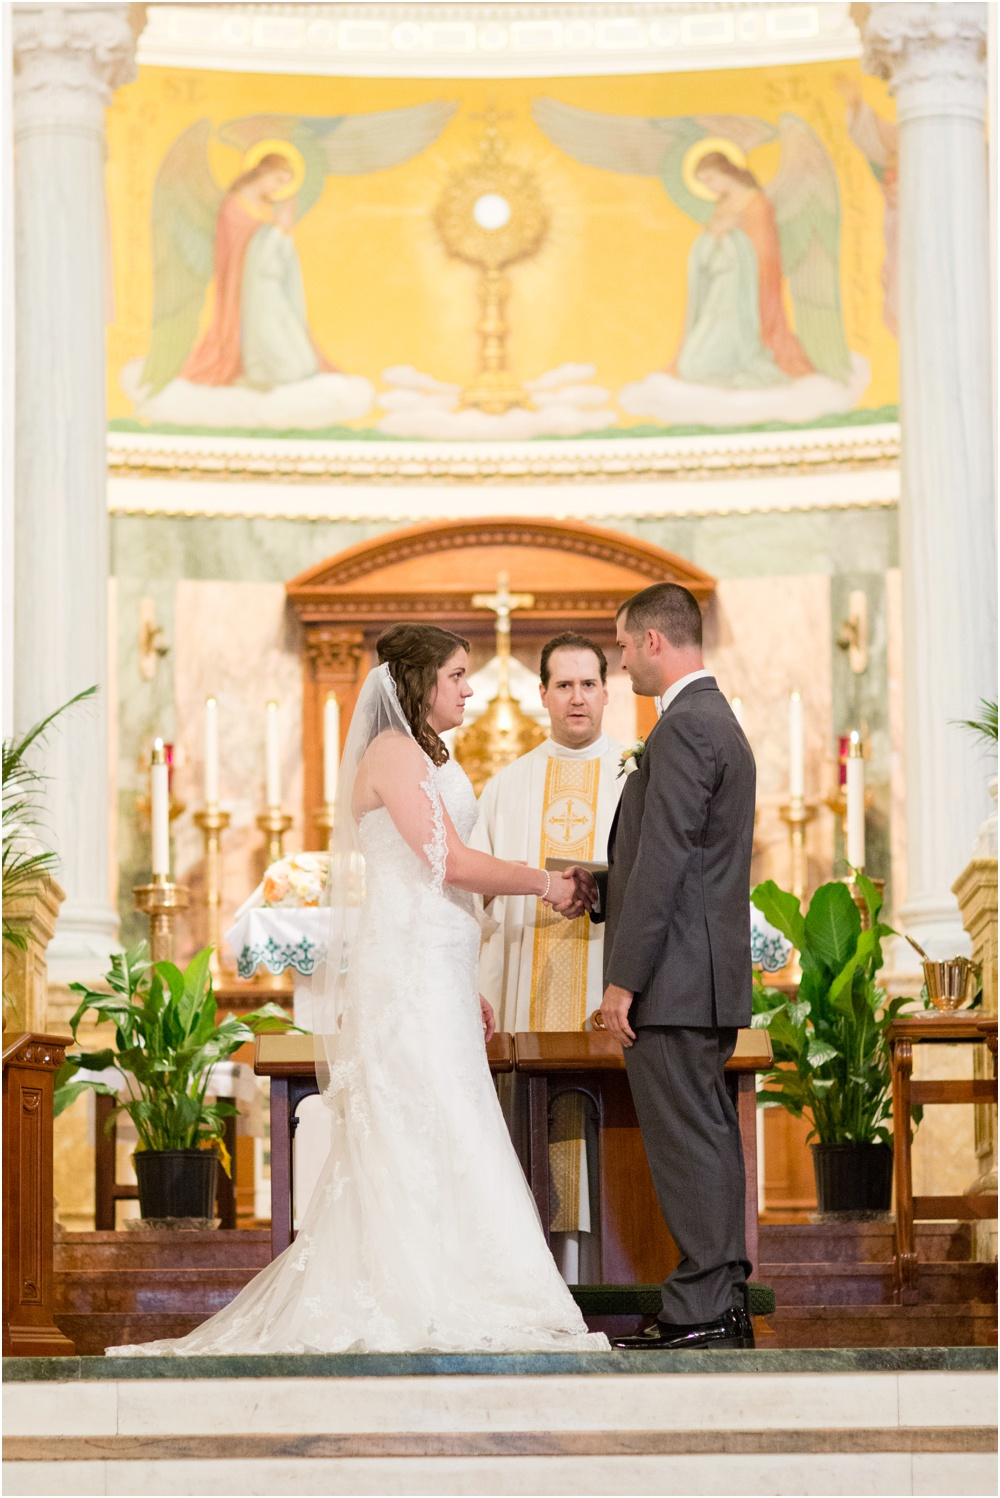 RI-Wedding-Photographer-Lefebvre-Photo-Blog_2013.jpg